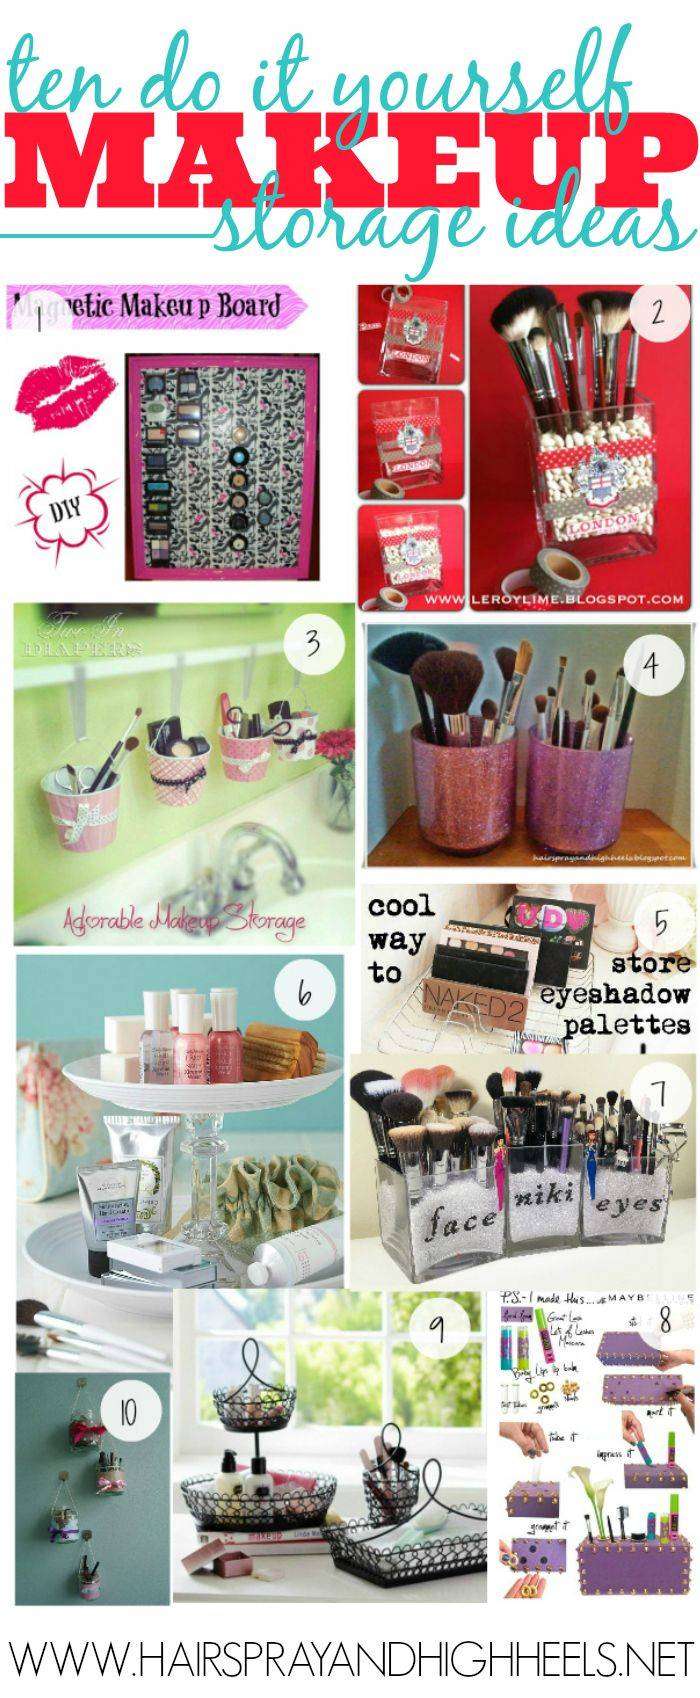 10 DIY Makeup Storage Ideas                                                                                                                    Hairspray and HighHeels